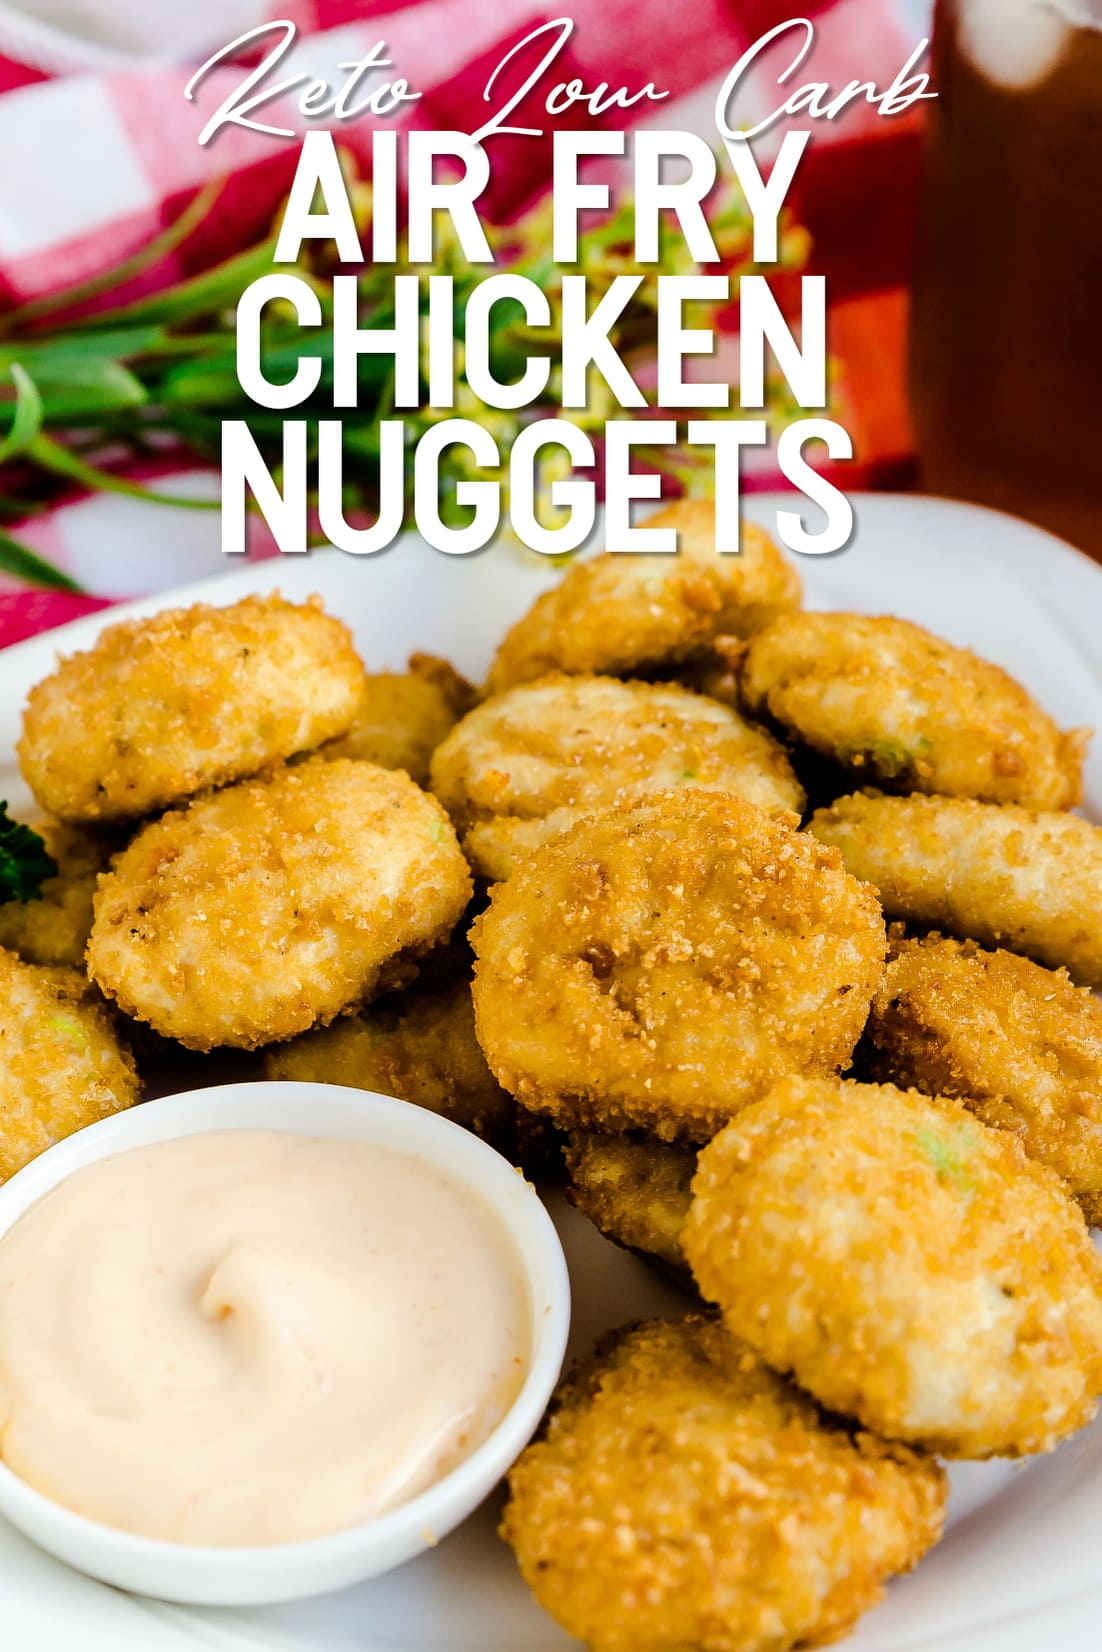 Air fried keto chicken nuggets served with spicy mayo dipping sauce